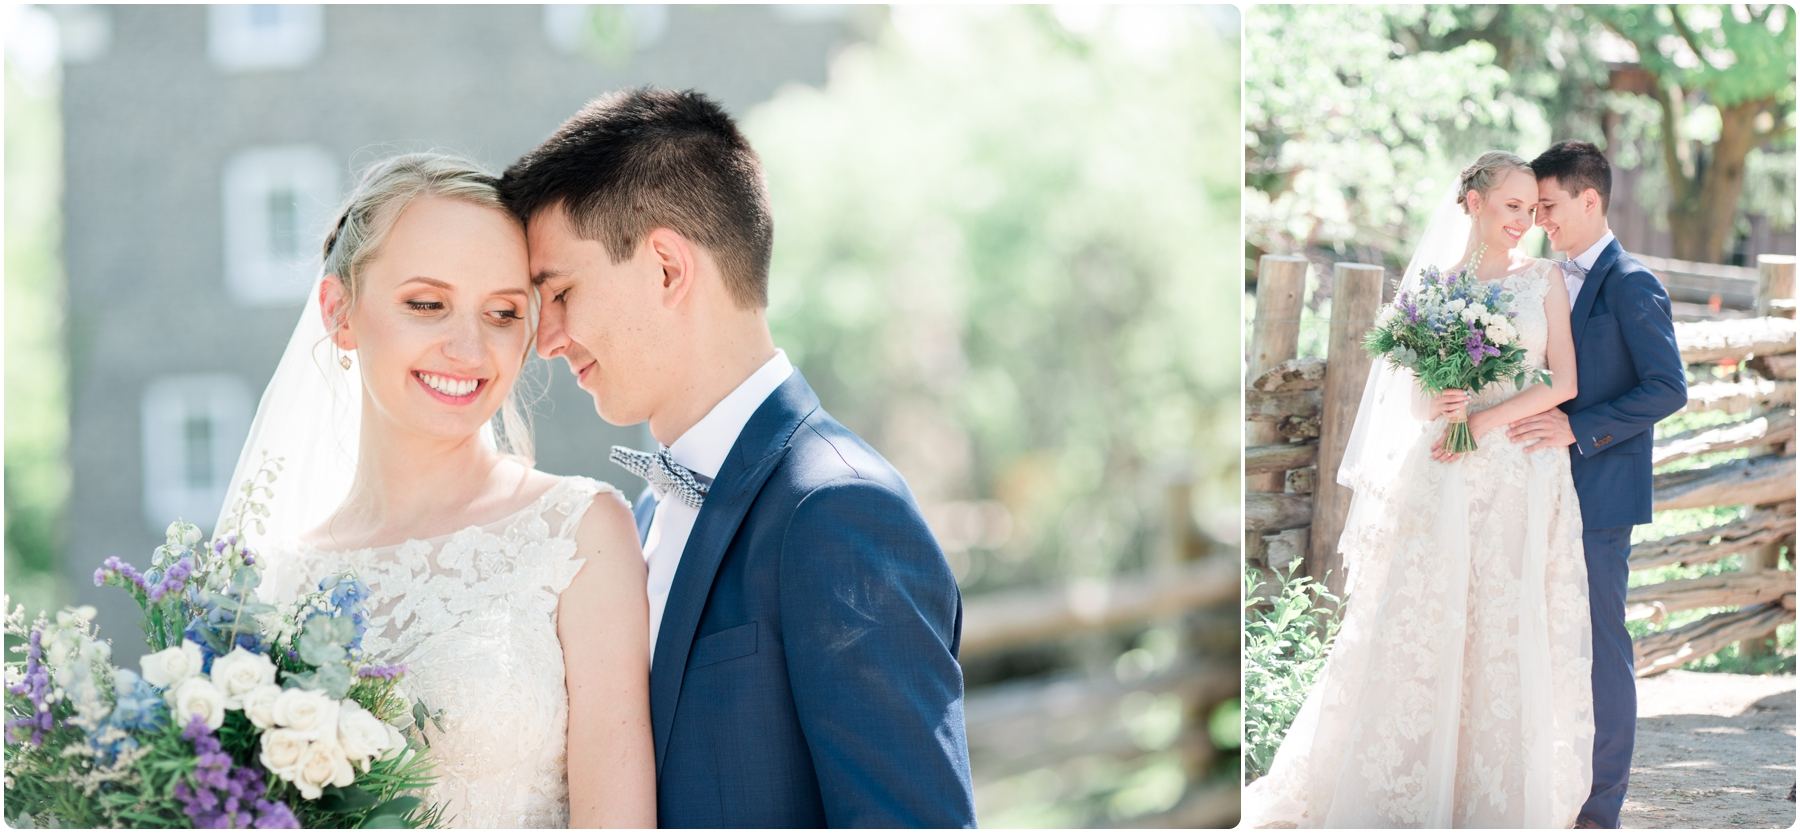 Black Creek Pioneer Village Wedding- Agata & Chris_0208